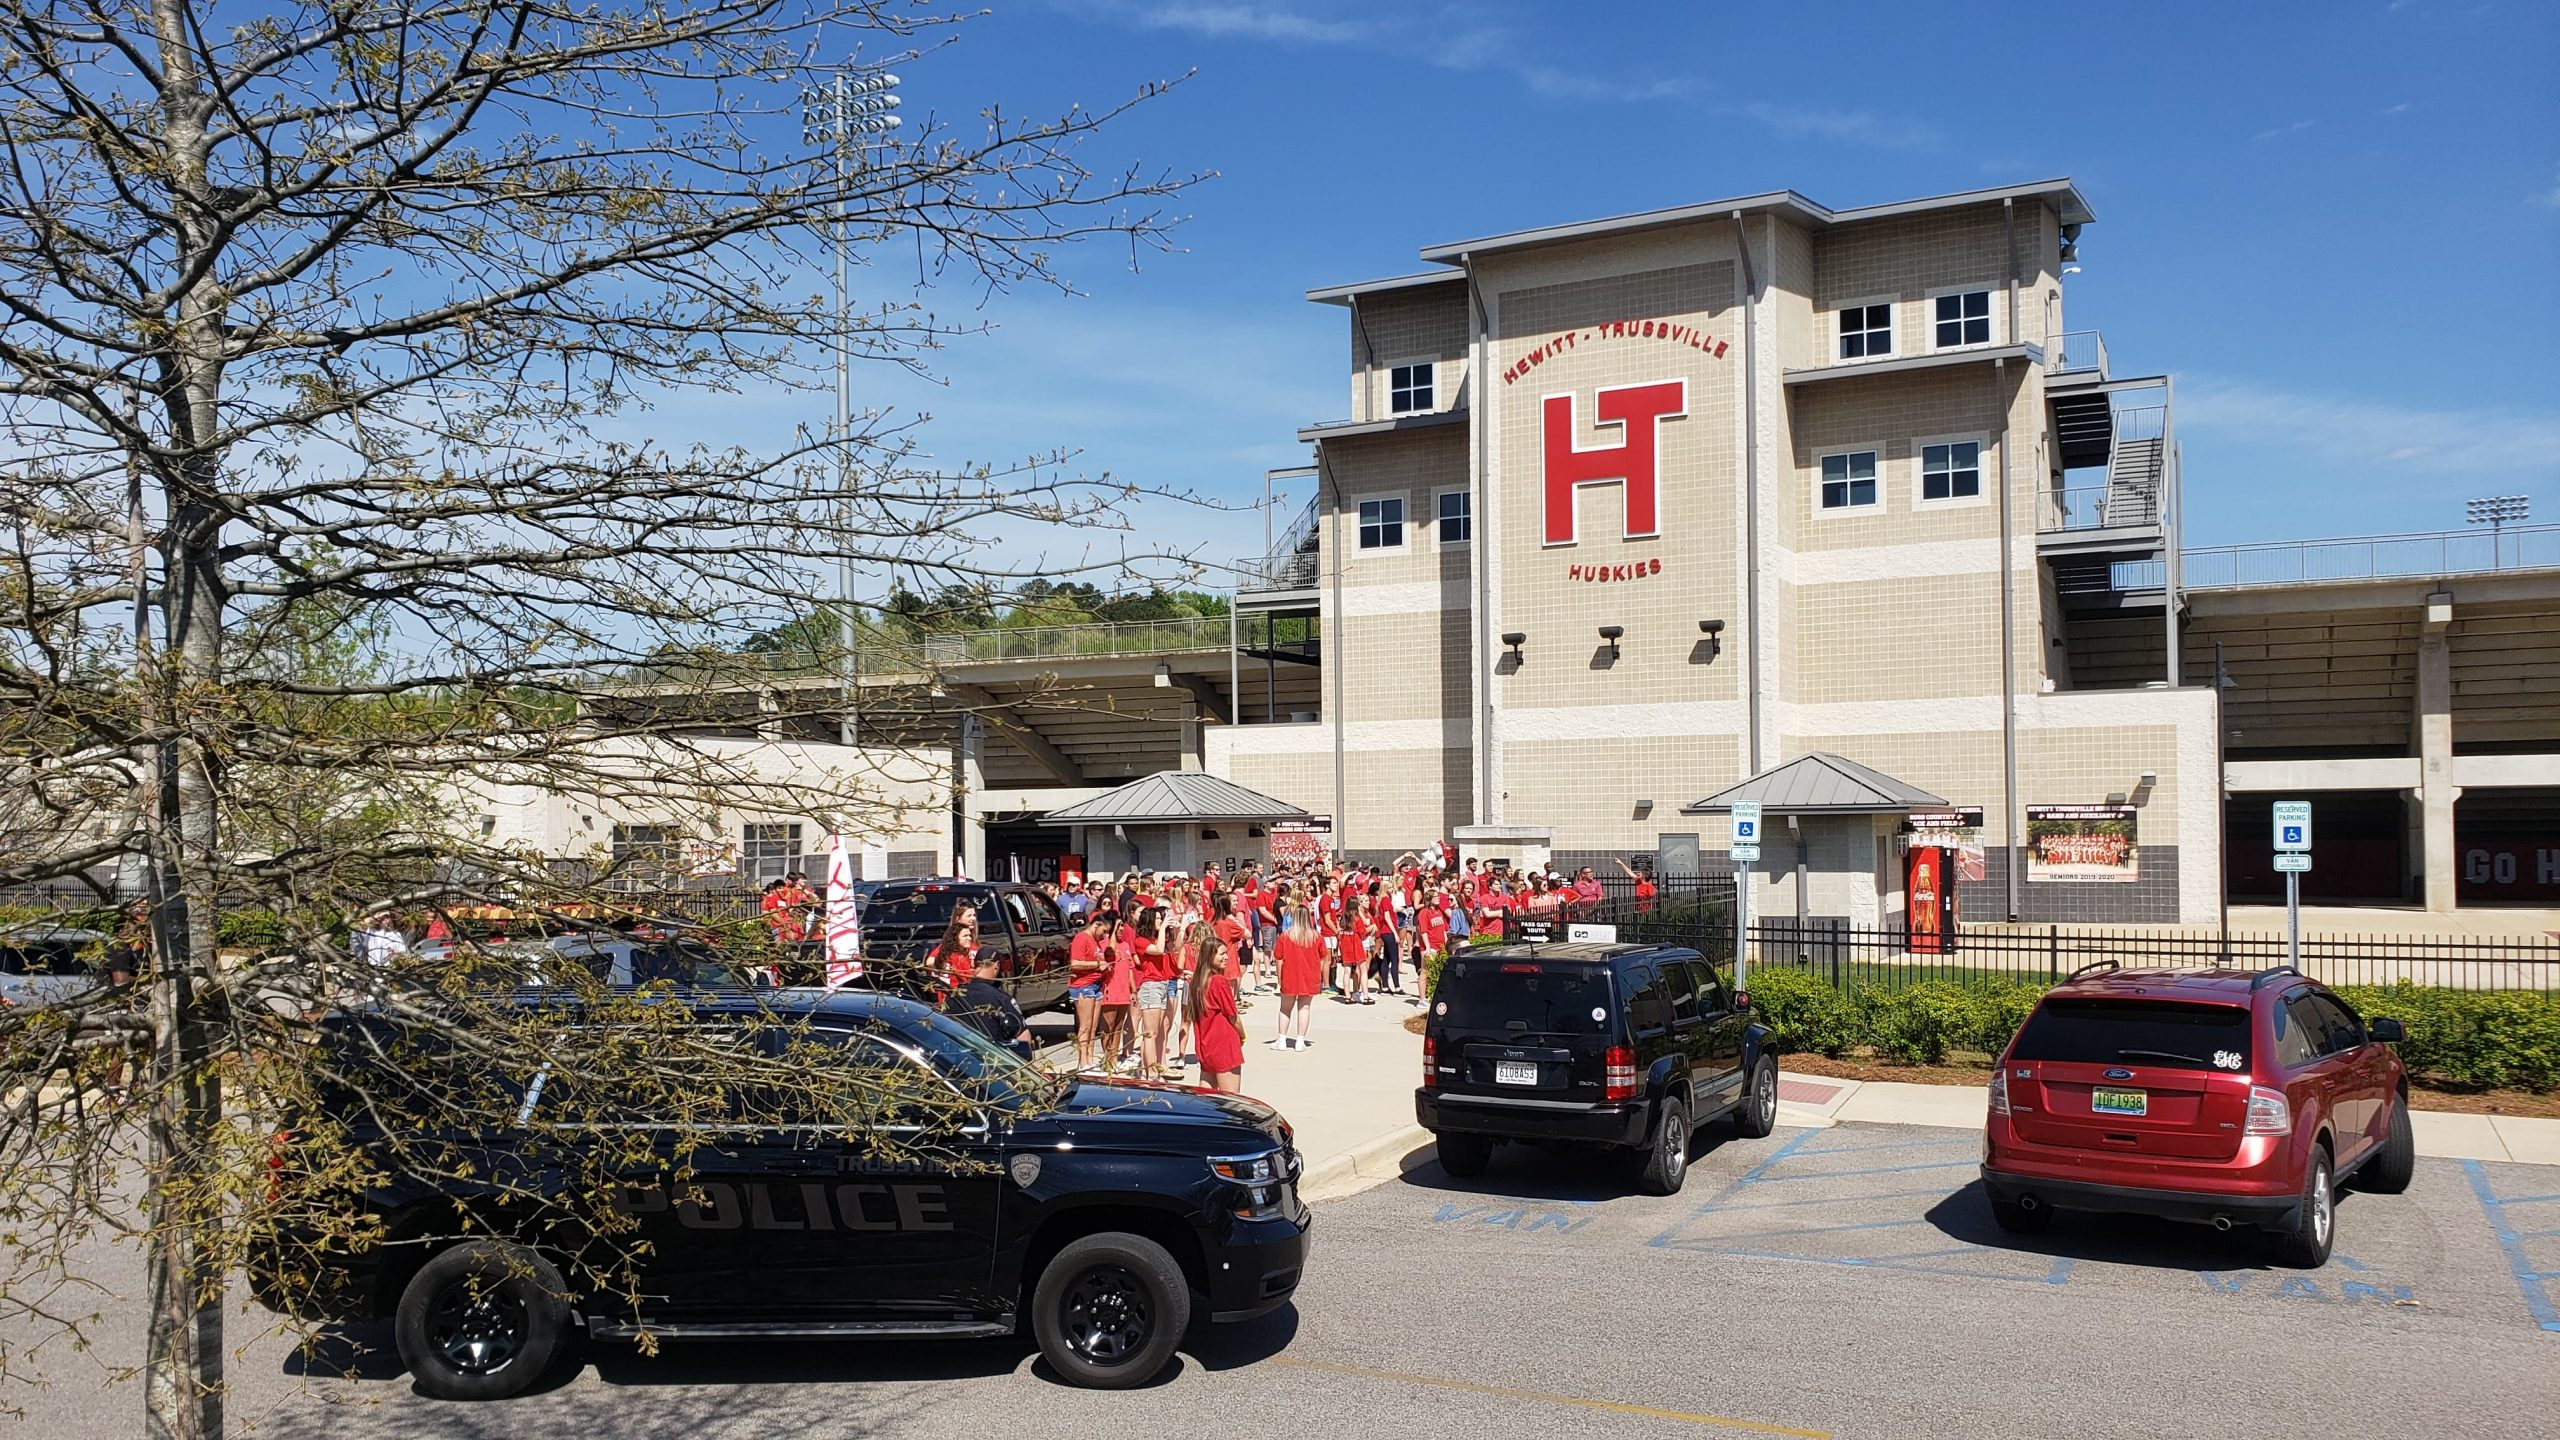 VIDEO: Hewitt-Trussville students gather for balloon release in honor of murdered classmate